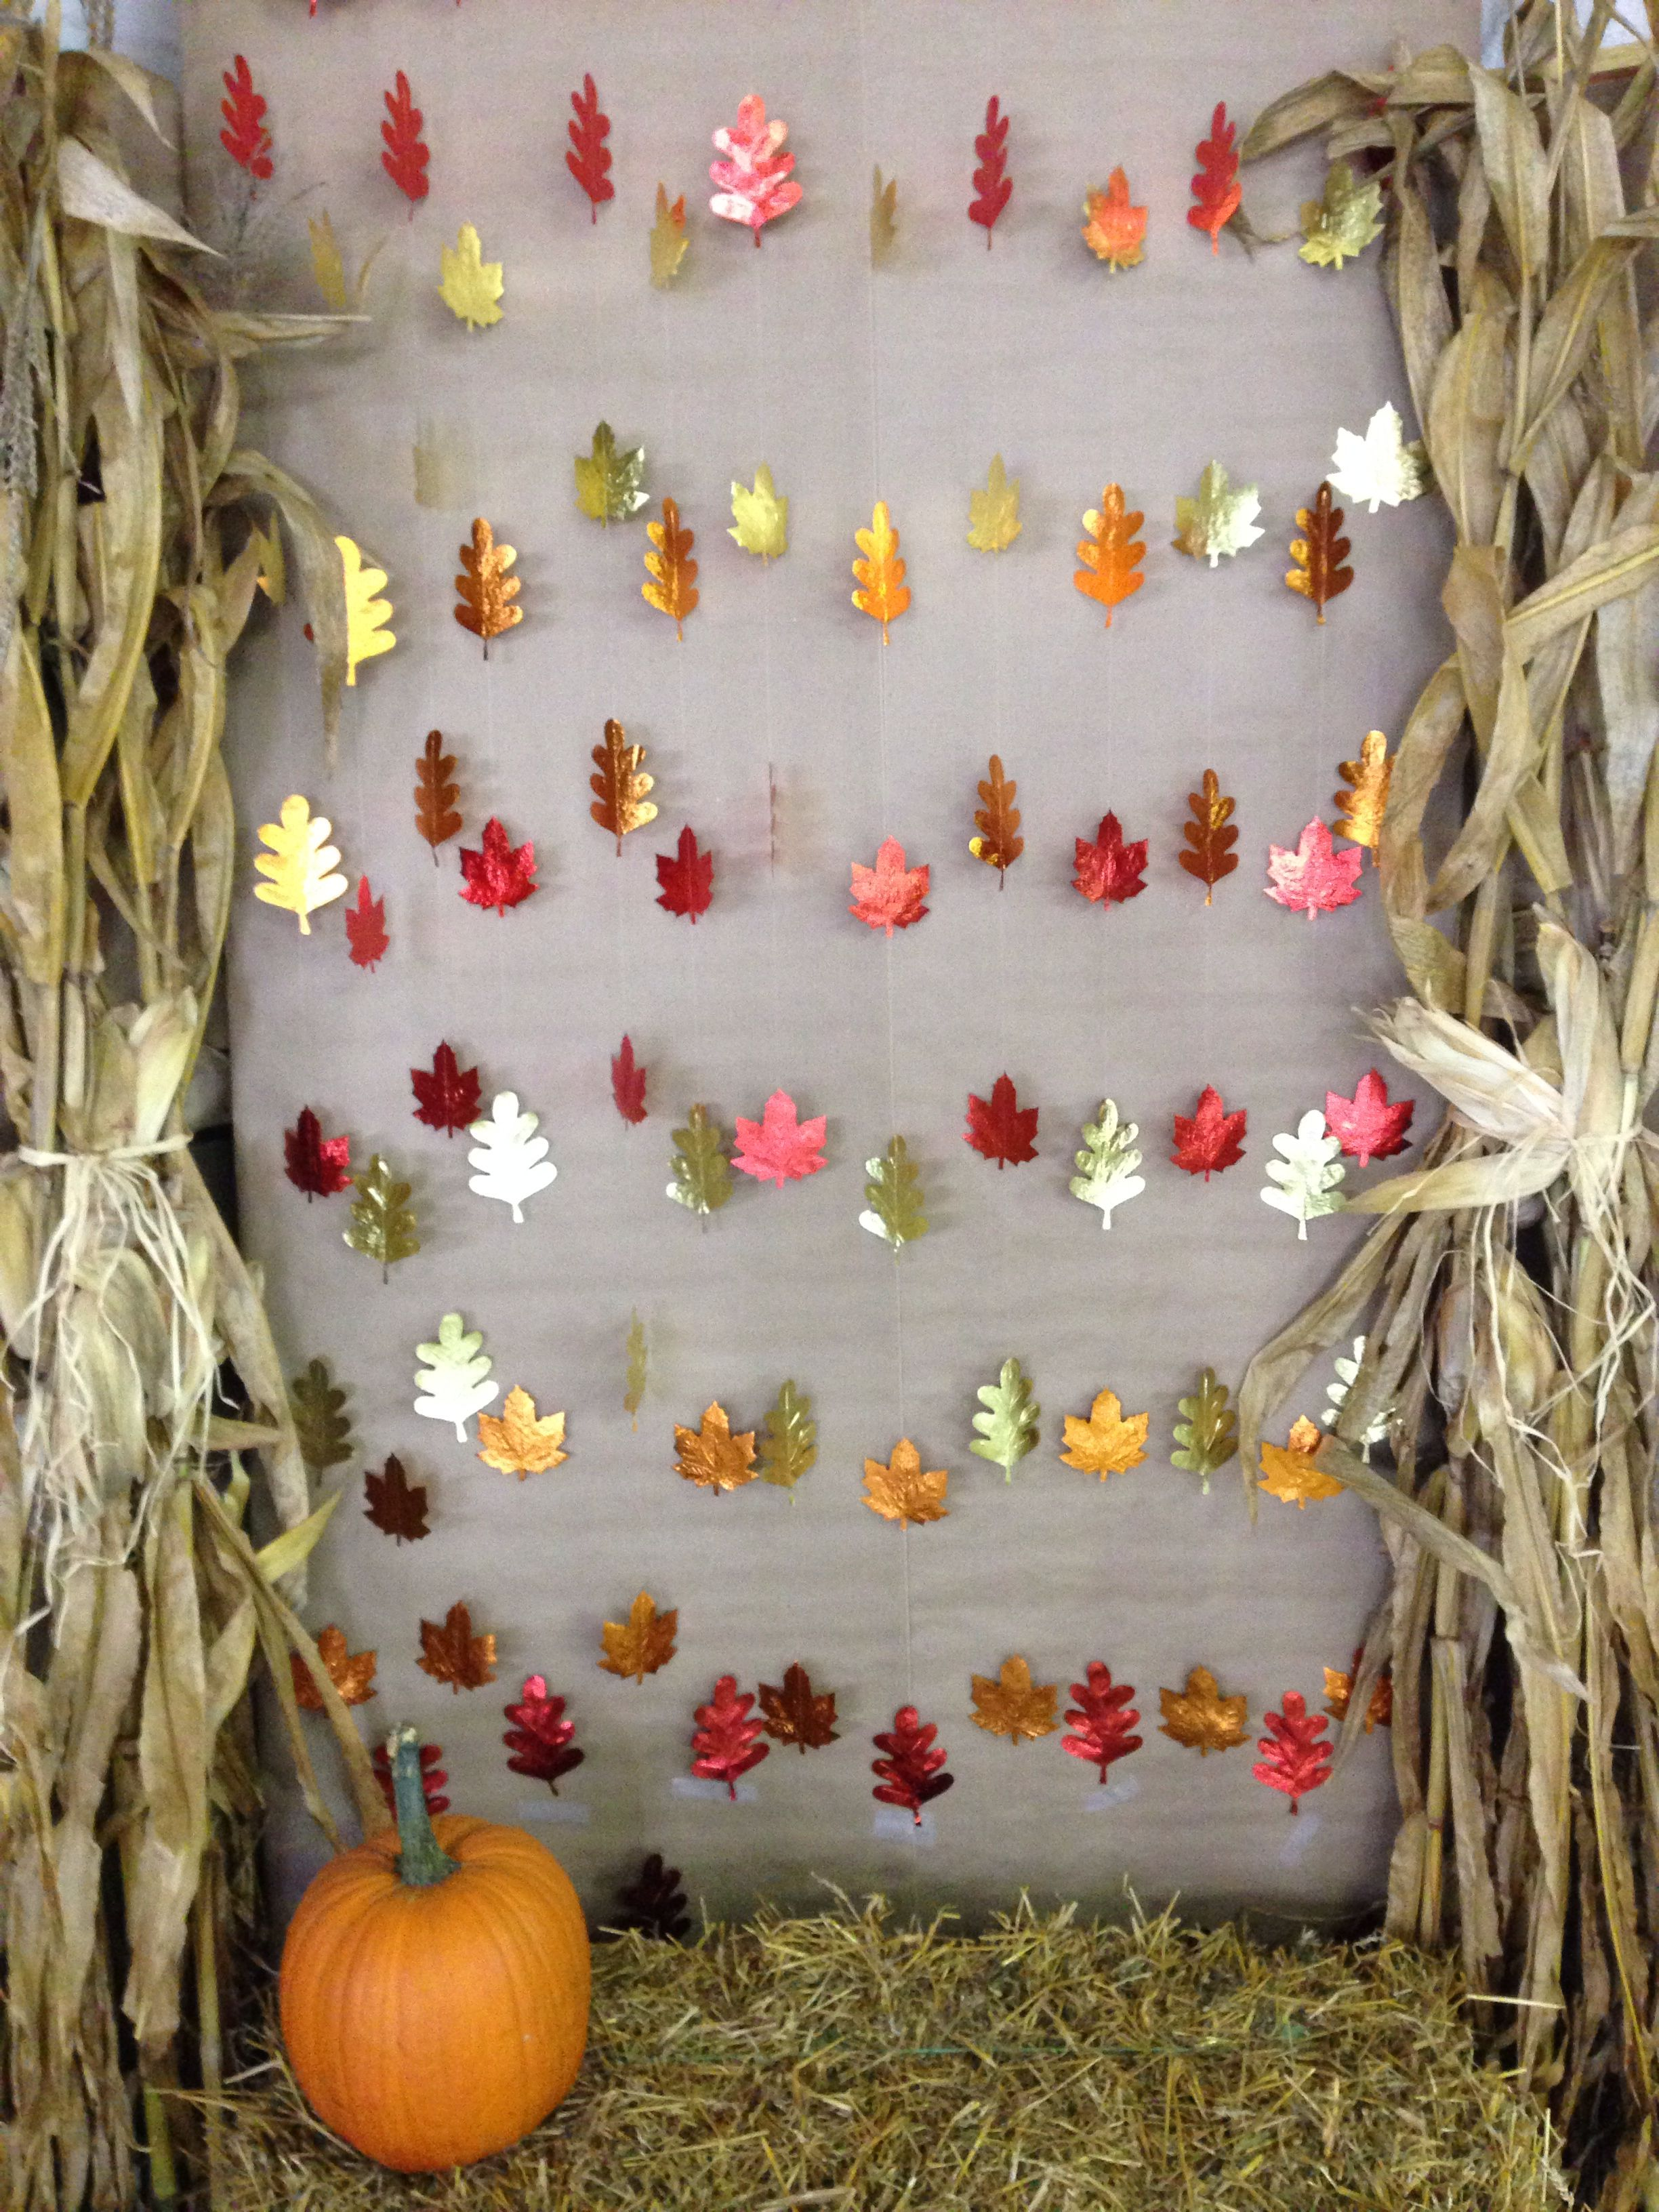 Diy fall photo booth backdrop for halloween or for Background decoration